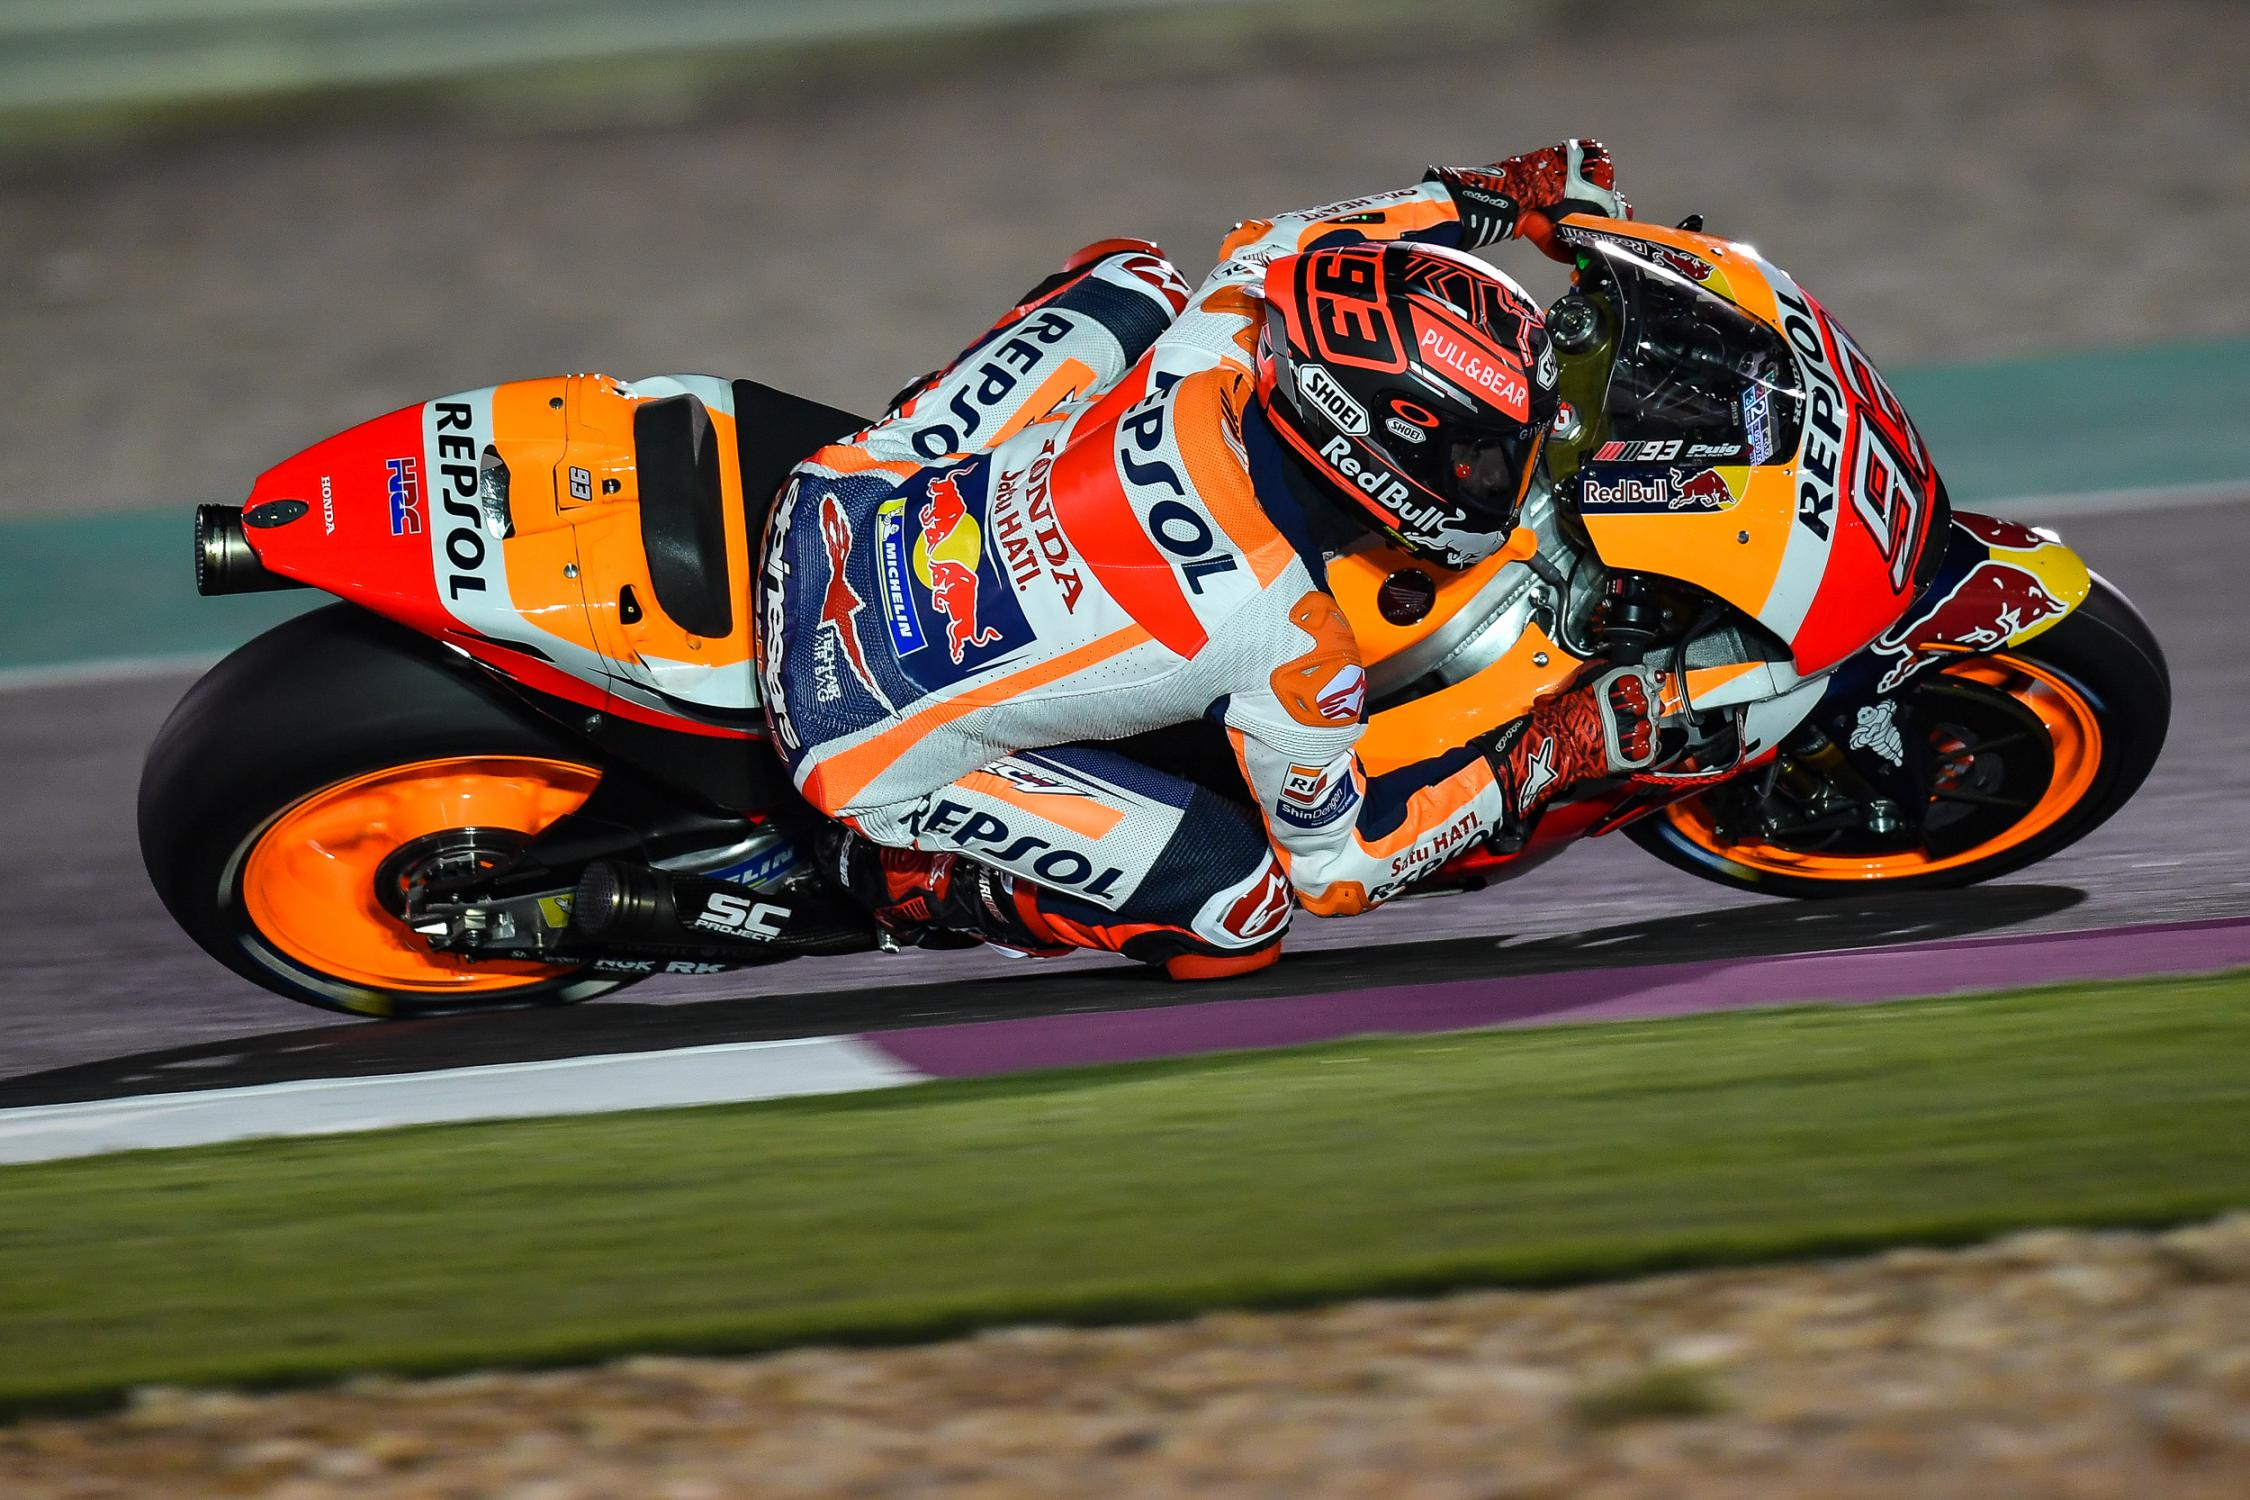 93-marc-marquez-esplg5_6252.gallery_full_top_fullscreen.jpg